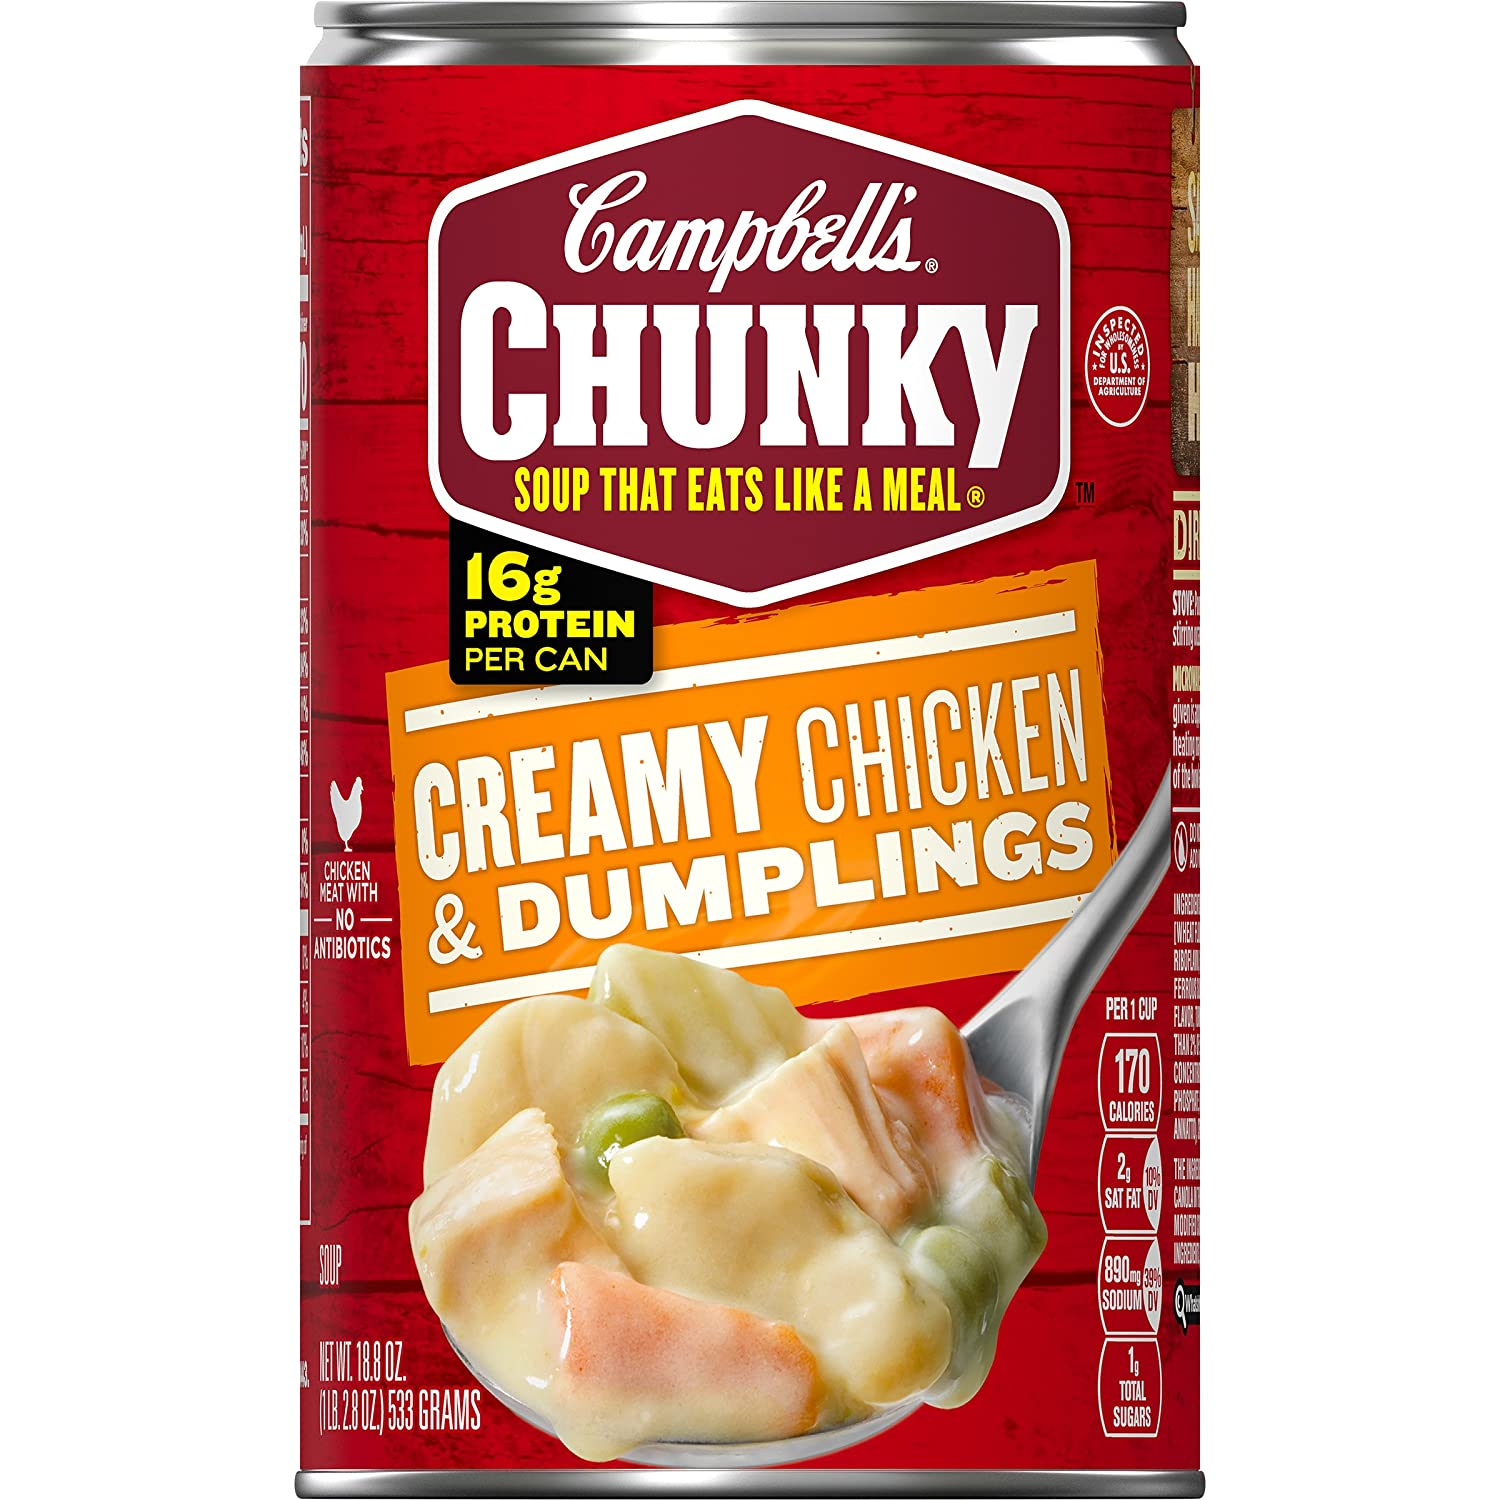 Campbell's Chunky Soup, Creamy Chicken & Dumplings, 18.8 Ounce (Pack of 12) (Packaging May Vary)